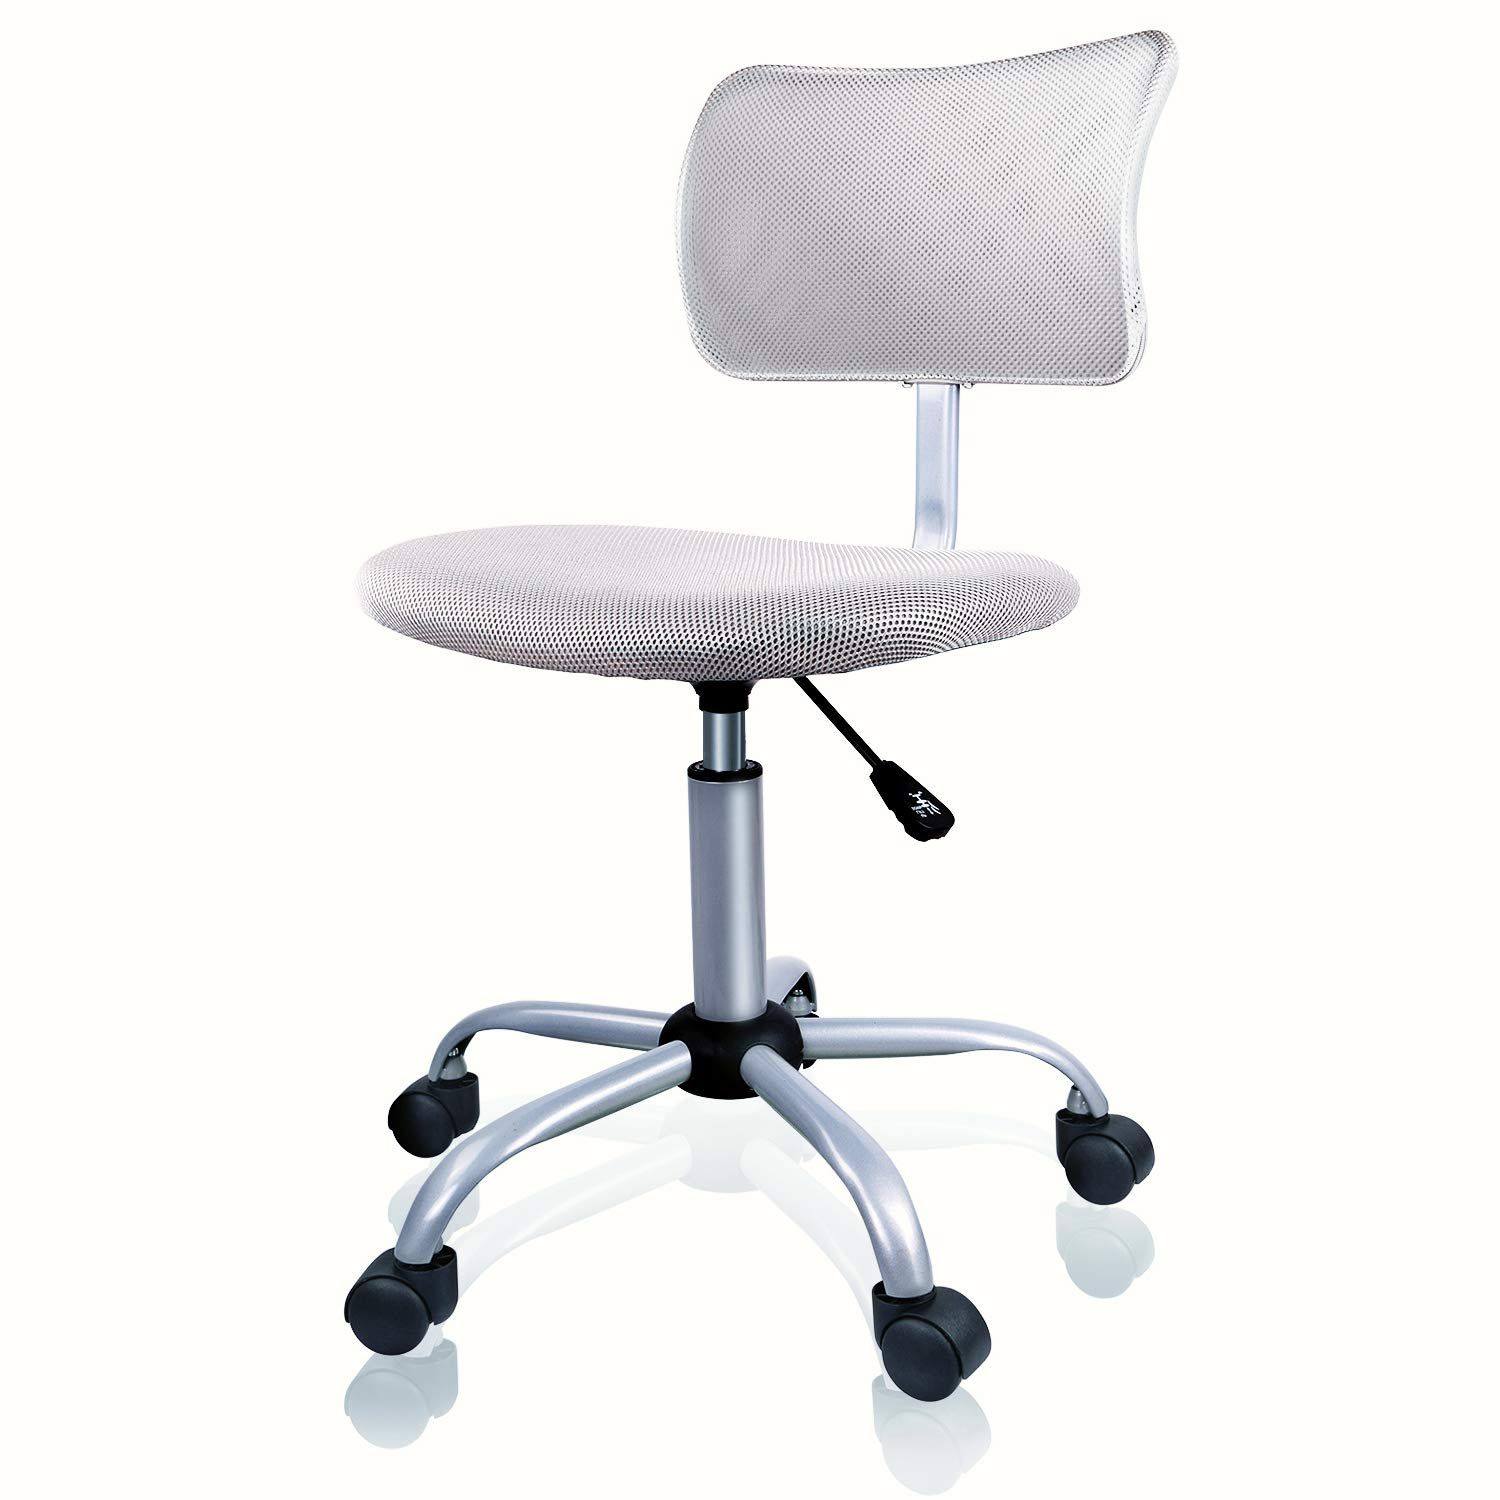 Armless Office Chair Low Back Computer Task Office Desk Chair With Swivel Casters For Home Office Conference Leaden Gr Luxury Office Chairs Chair Office Chair